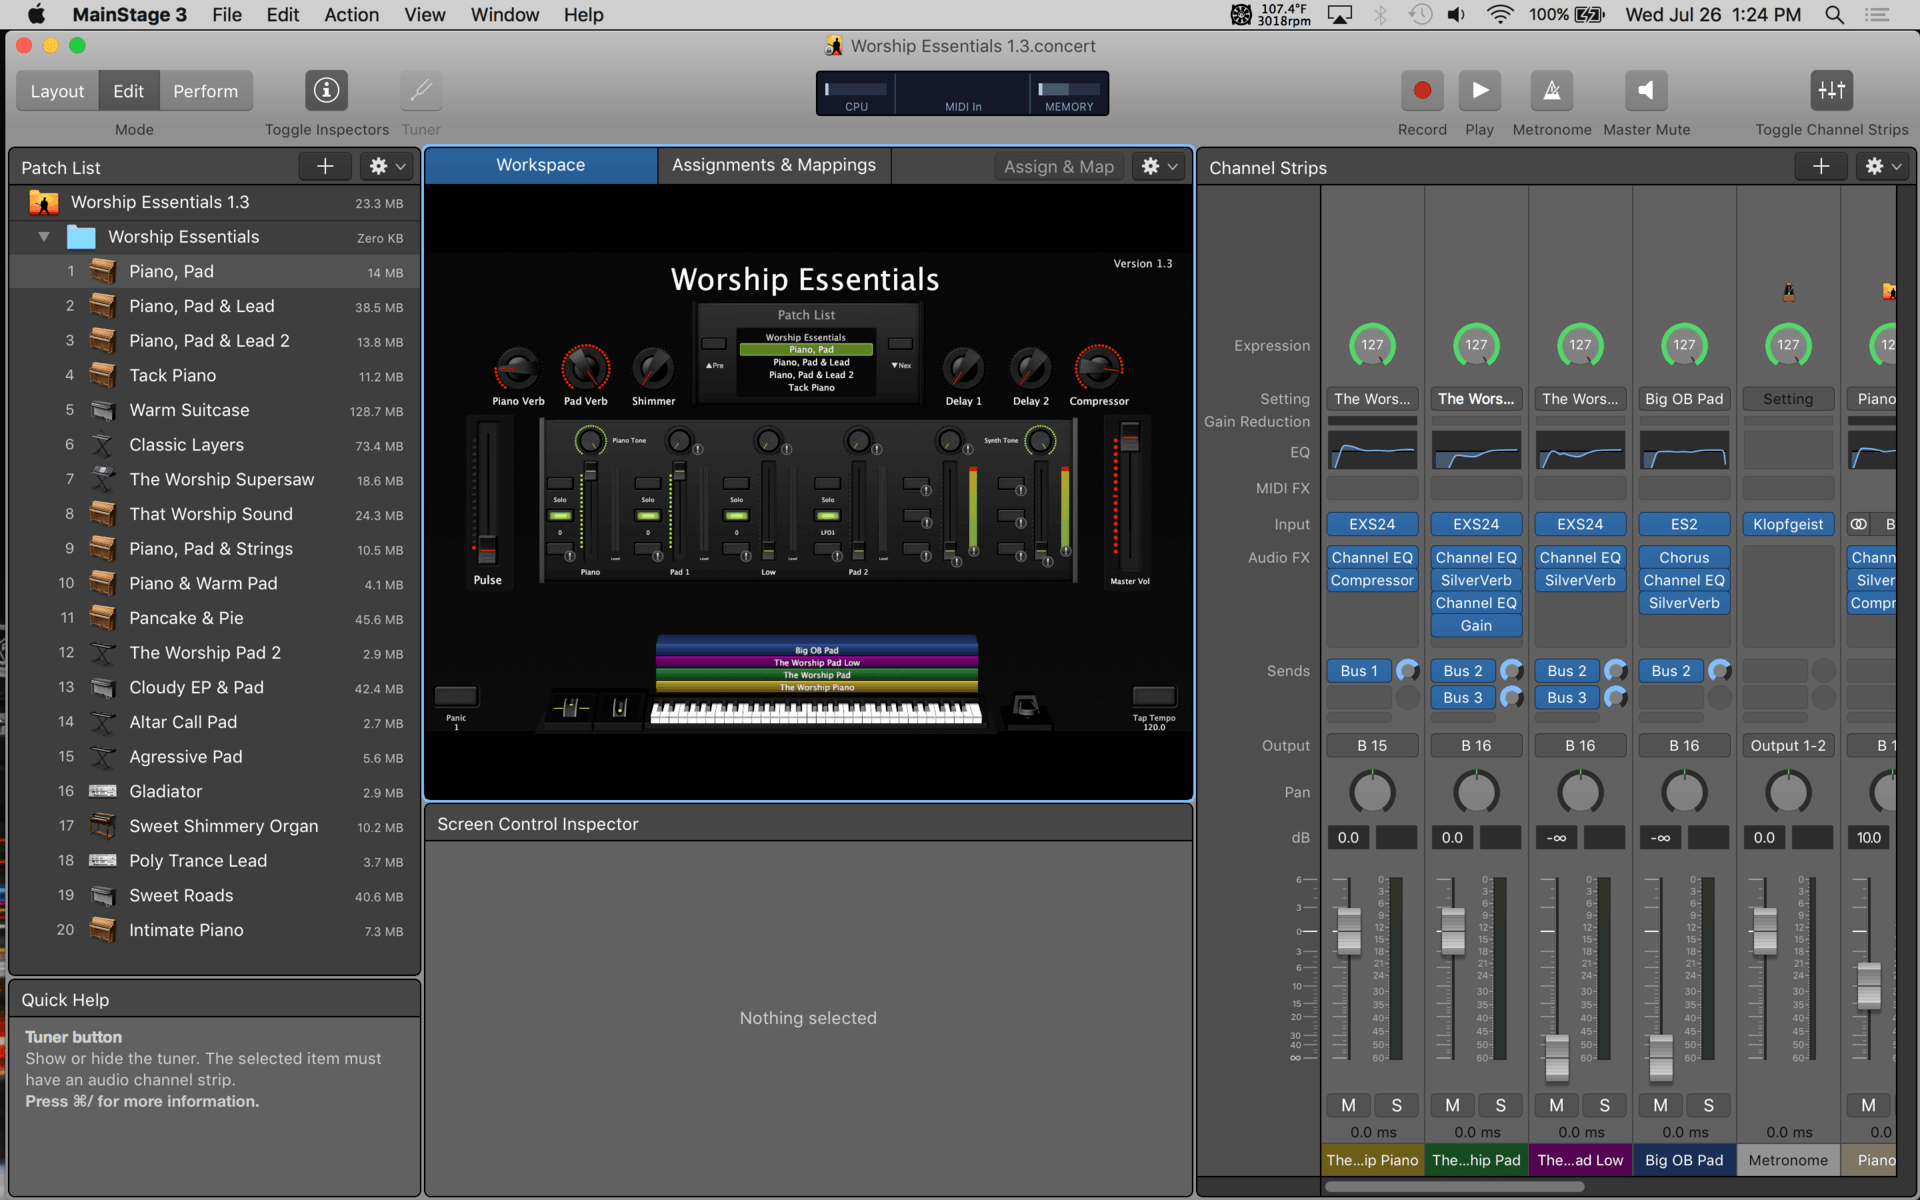 How To Add Ambient Pad Audio Files to MainStage 3 - That